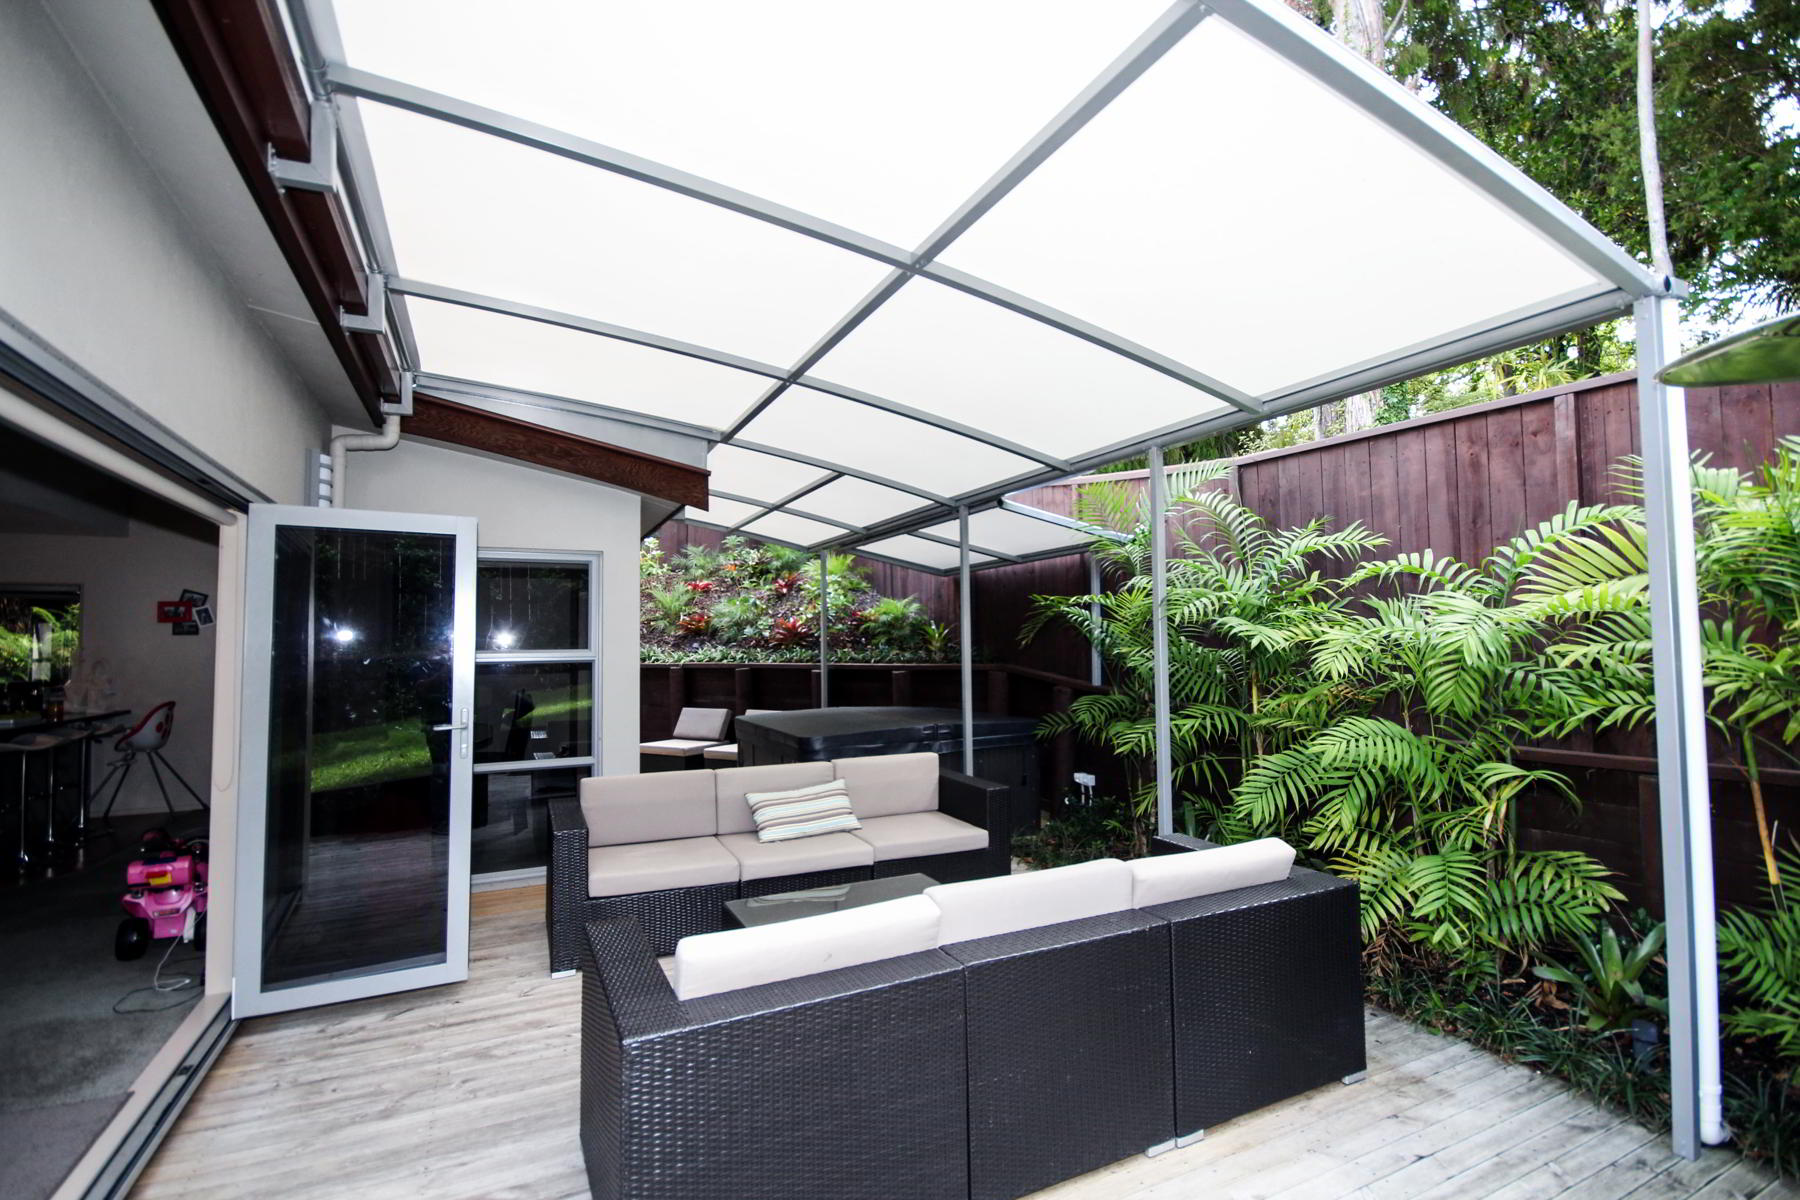 How To Clean Your Canopy Awning